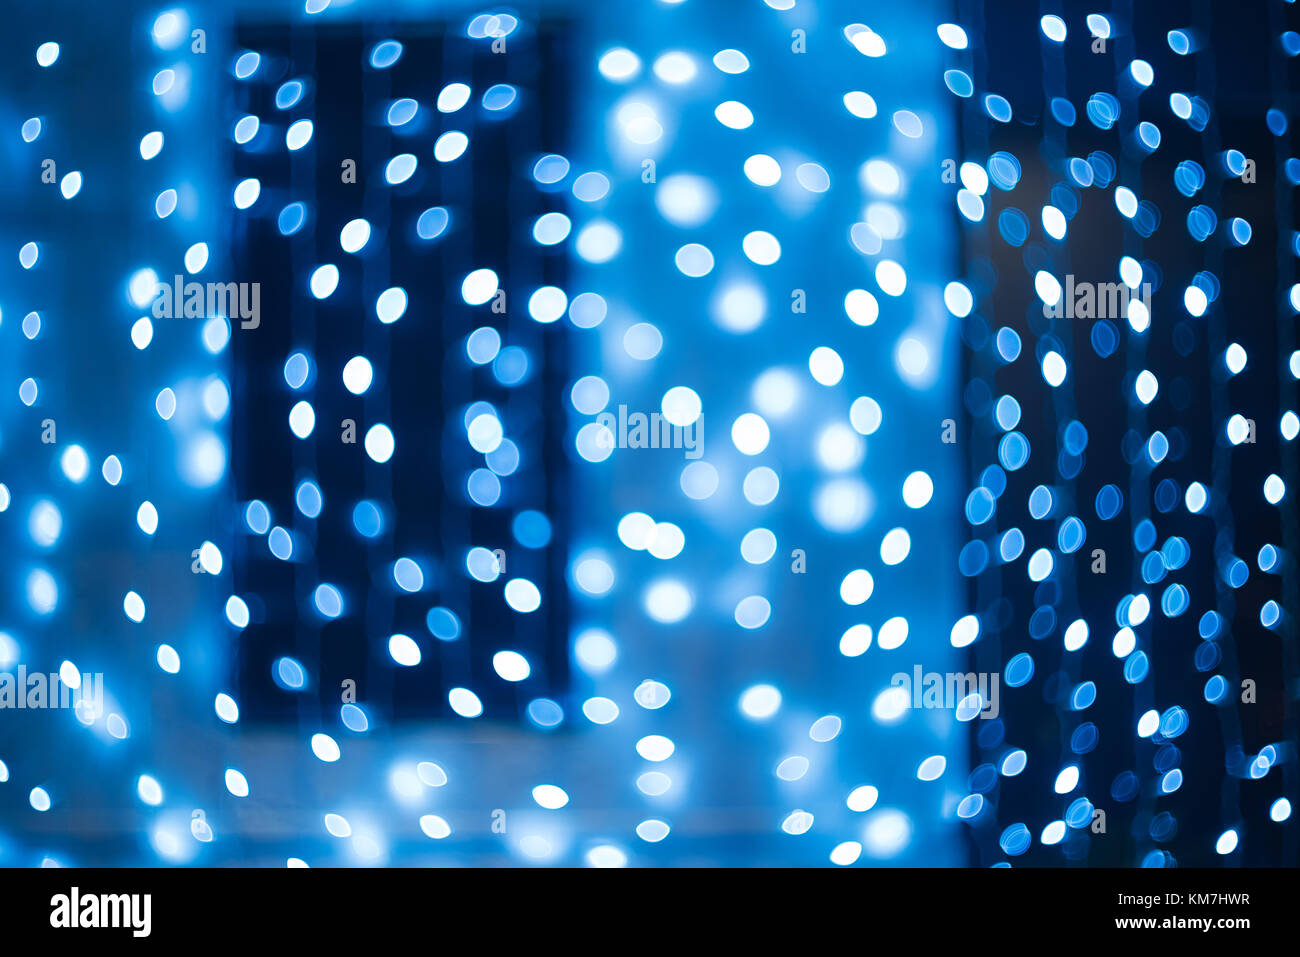 Bokeh. New Year bokeh background. Christmas abstract background with colorful bokeh defocused lights for holiday - Stock Image